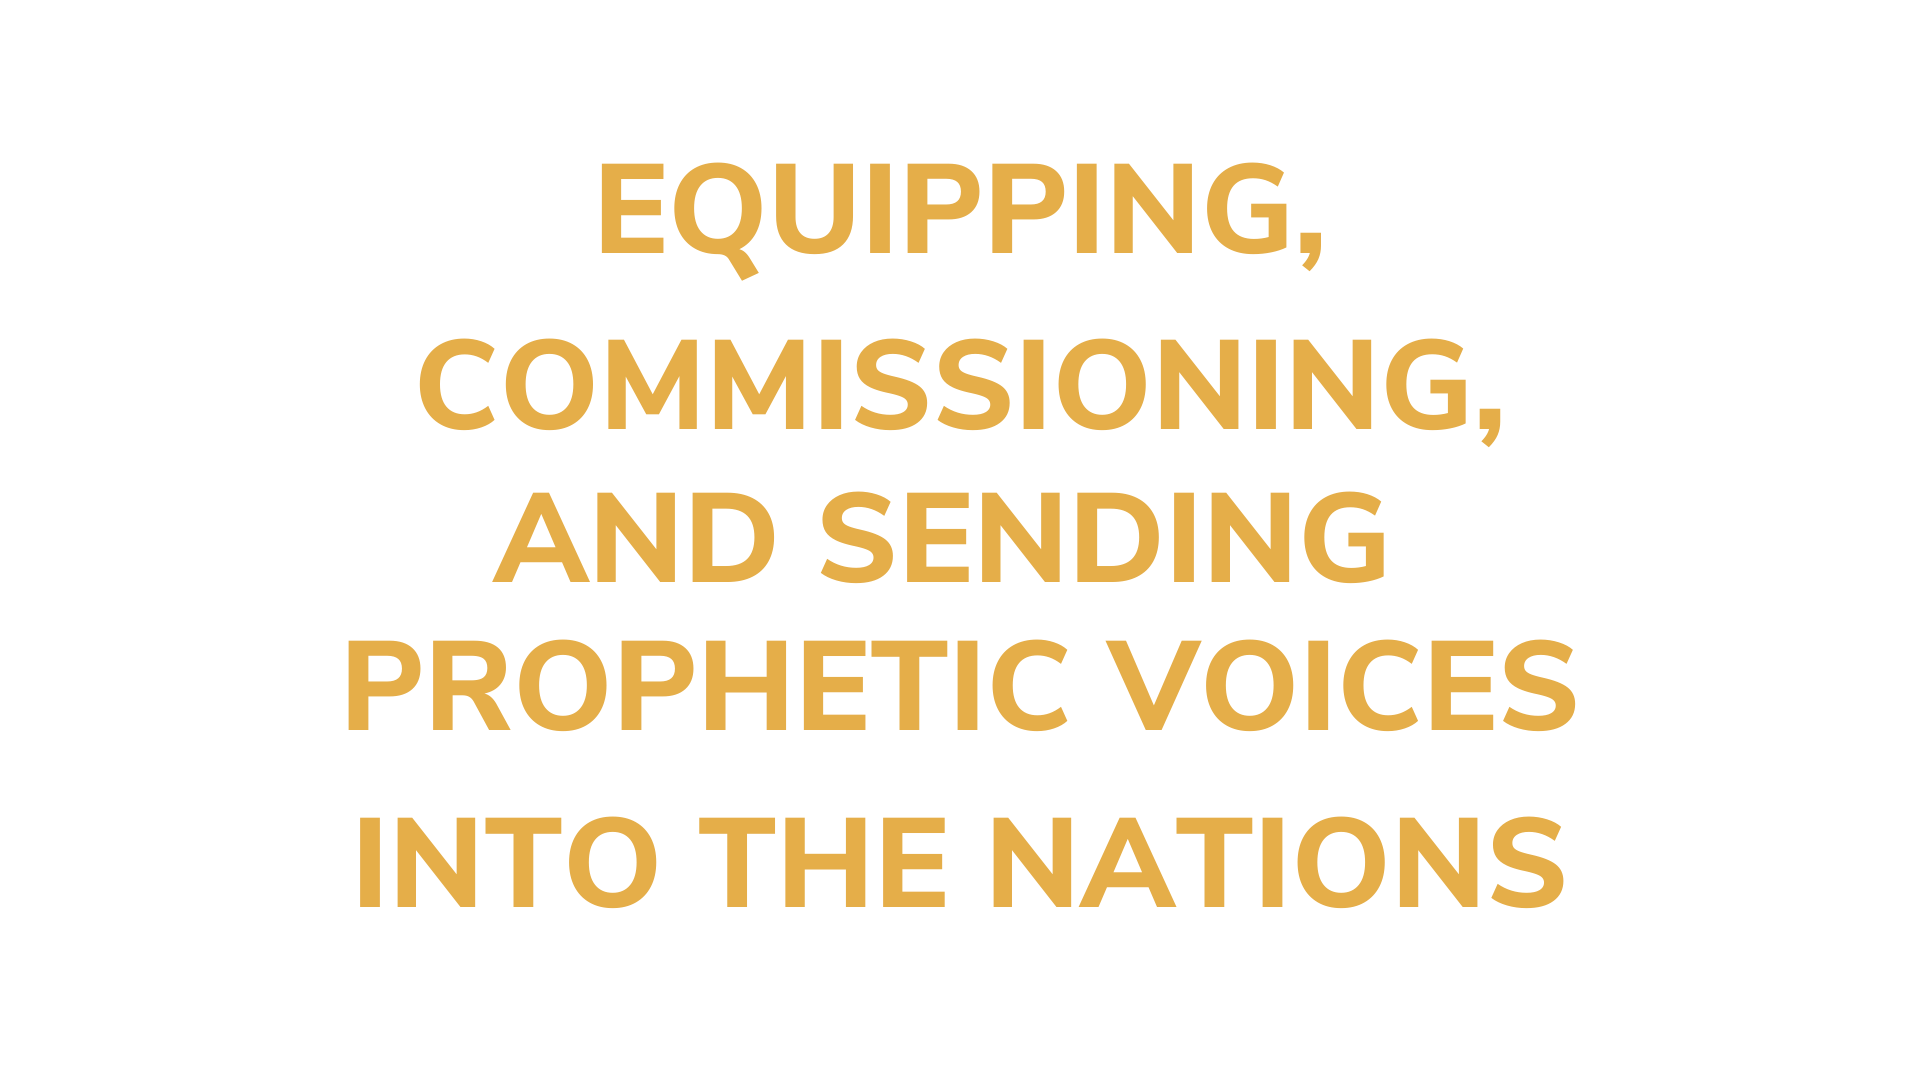 EQUIPPING, COMMISSIONING, AND SENDING PROPHETIC VOICES INTO THE NATIONS. (3)